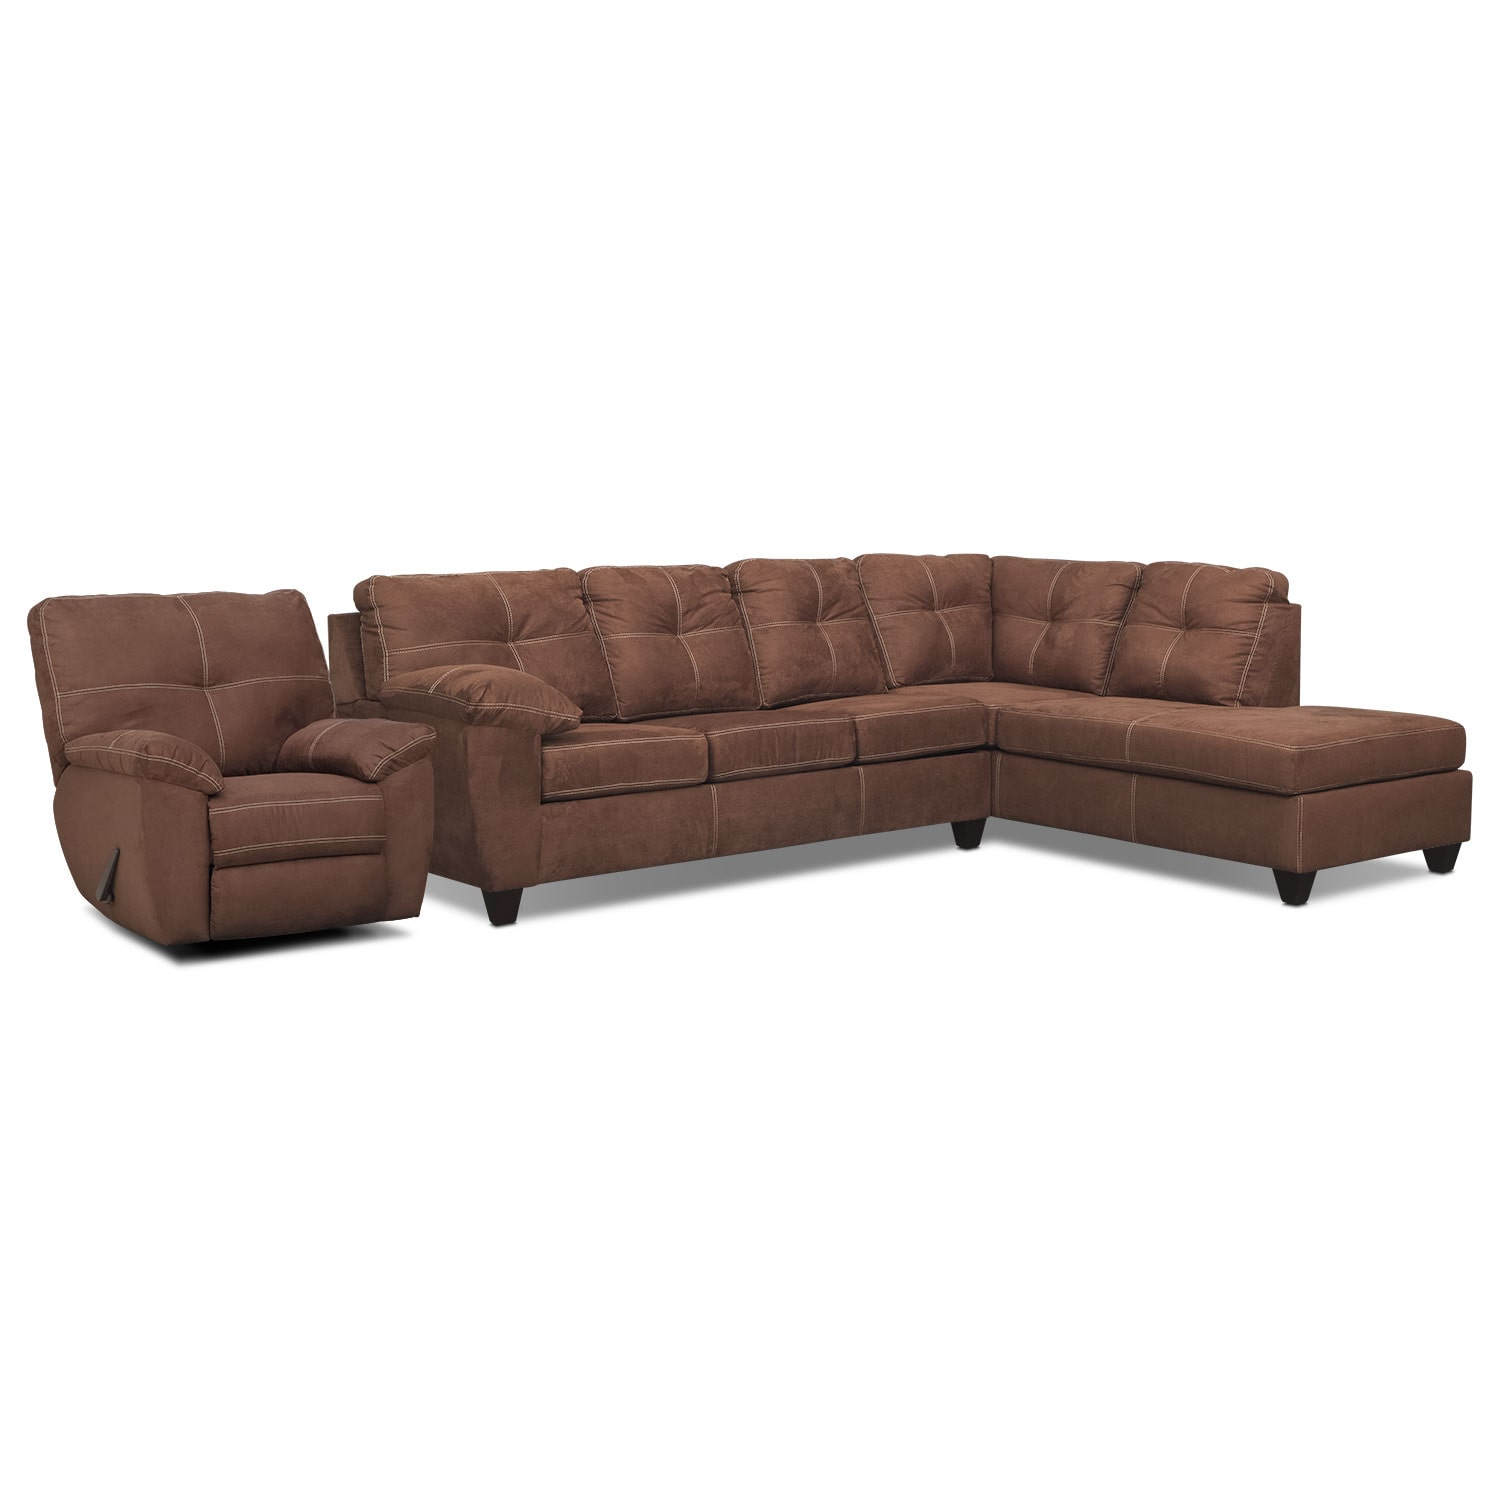 Rialto 2-Piece Sectional with Right-Facing Chaise and Glider Recliner Set - Coffee